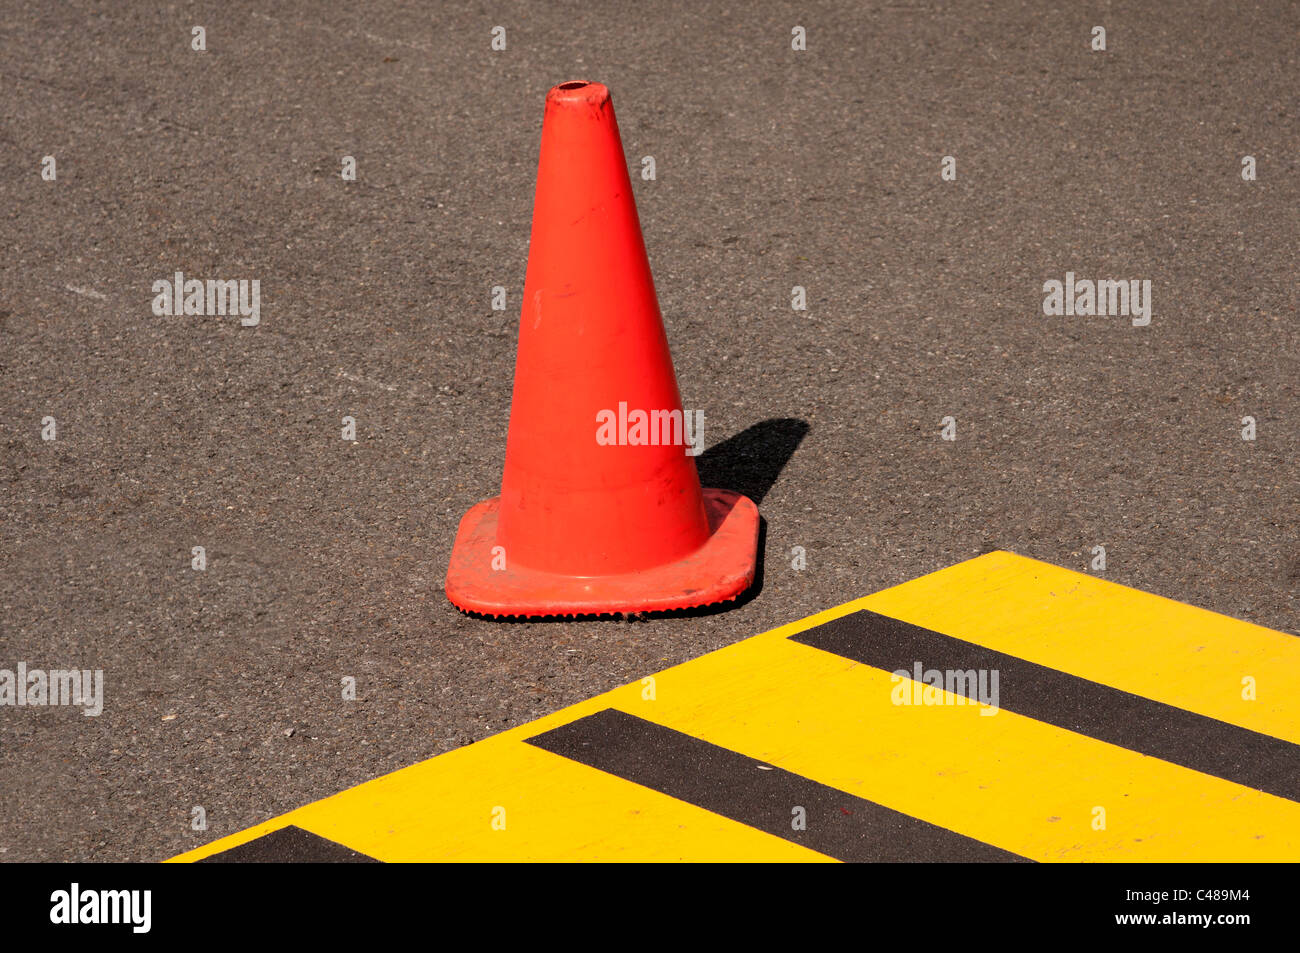 Orange traffic cone at crosswalk. - Stock Image